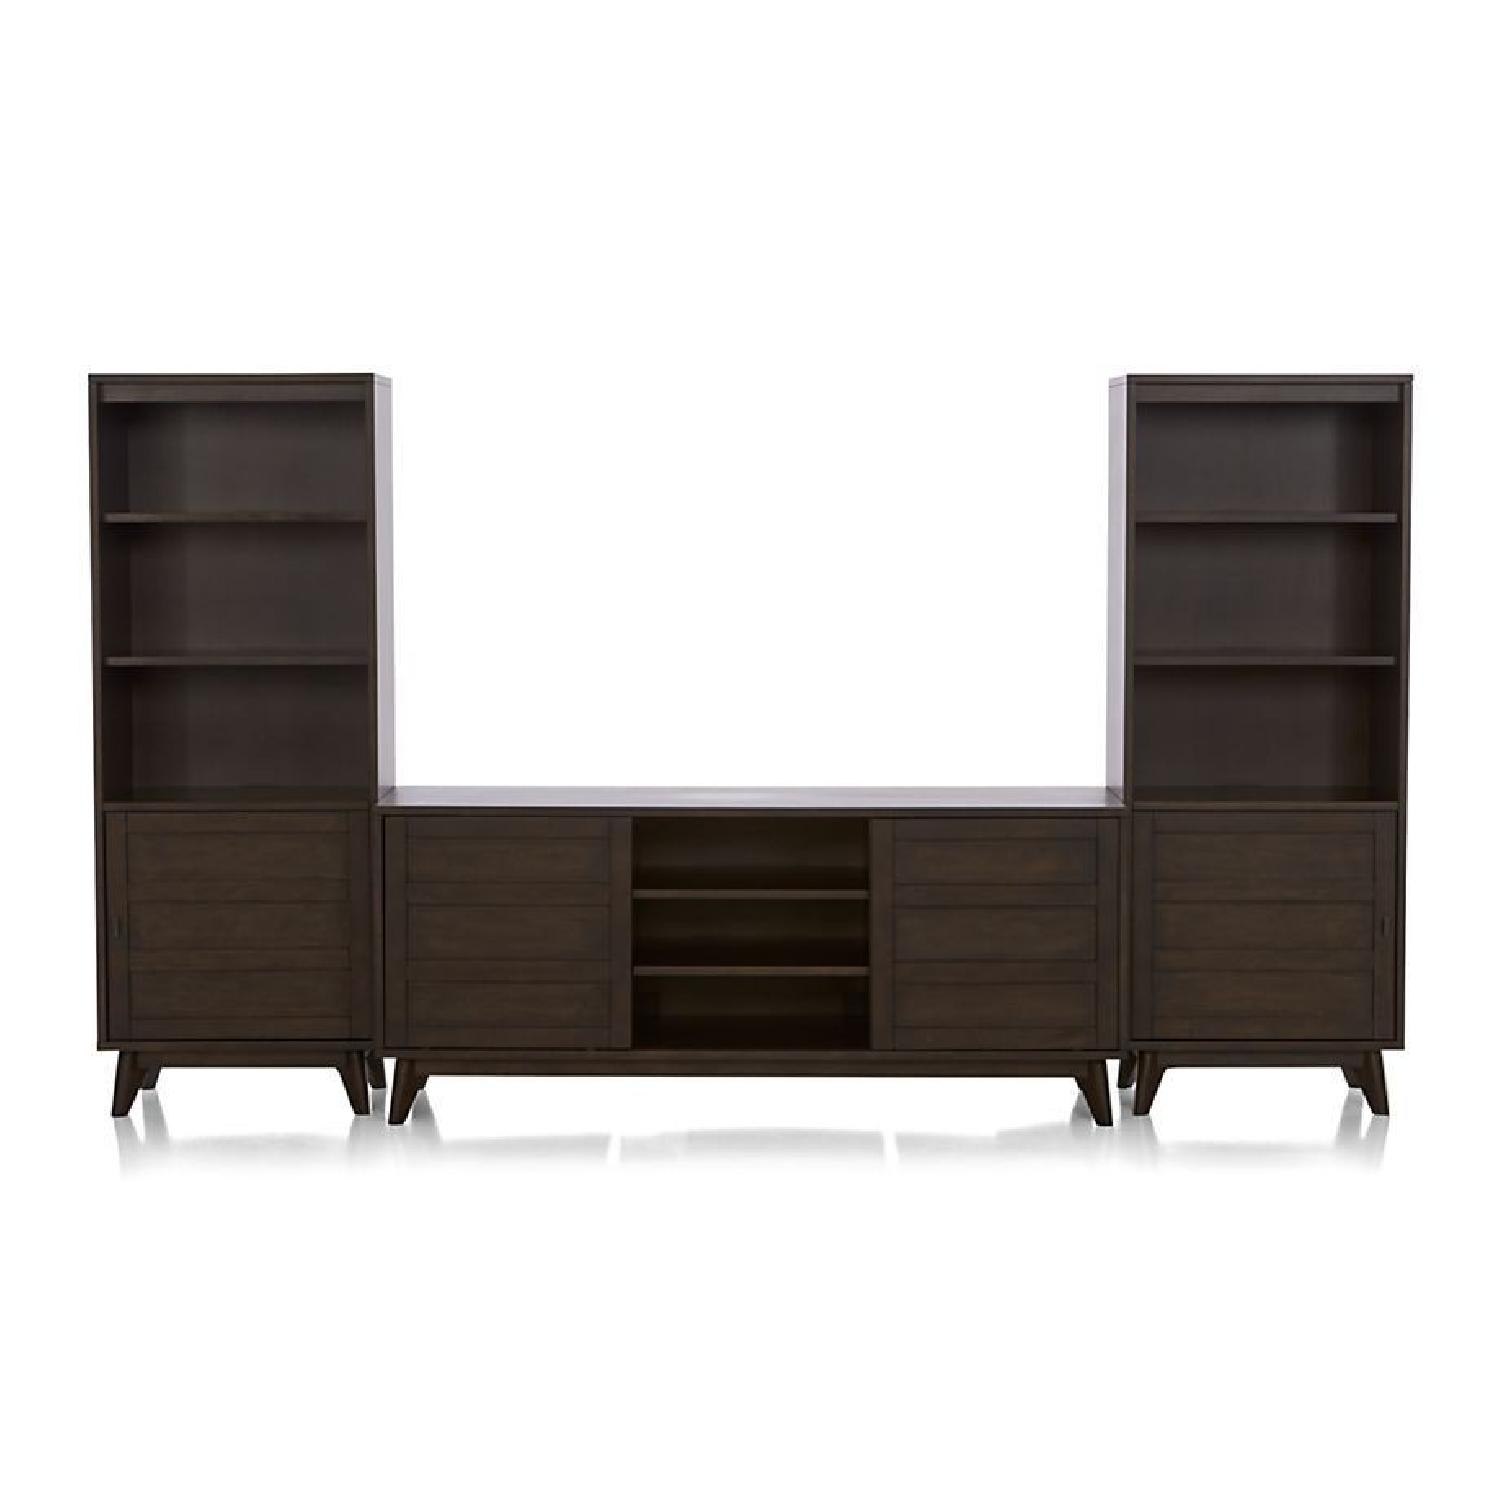 Crate & Barrel HD Media Console w/ 2 Towers - image-3